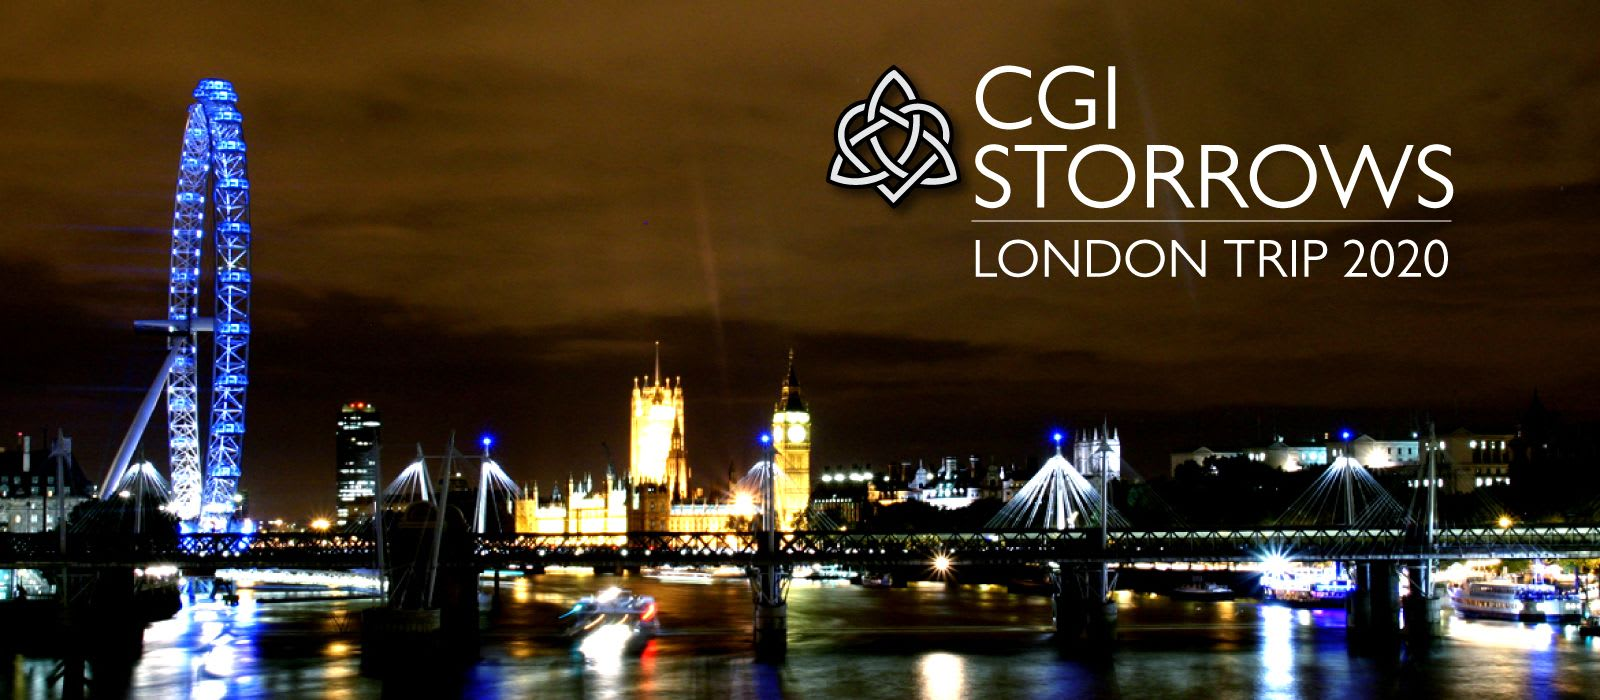 Picture of London at night with the Storrows Logo on it